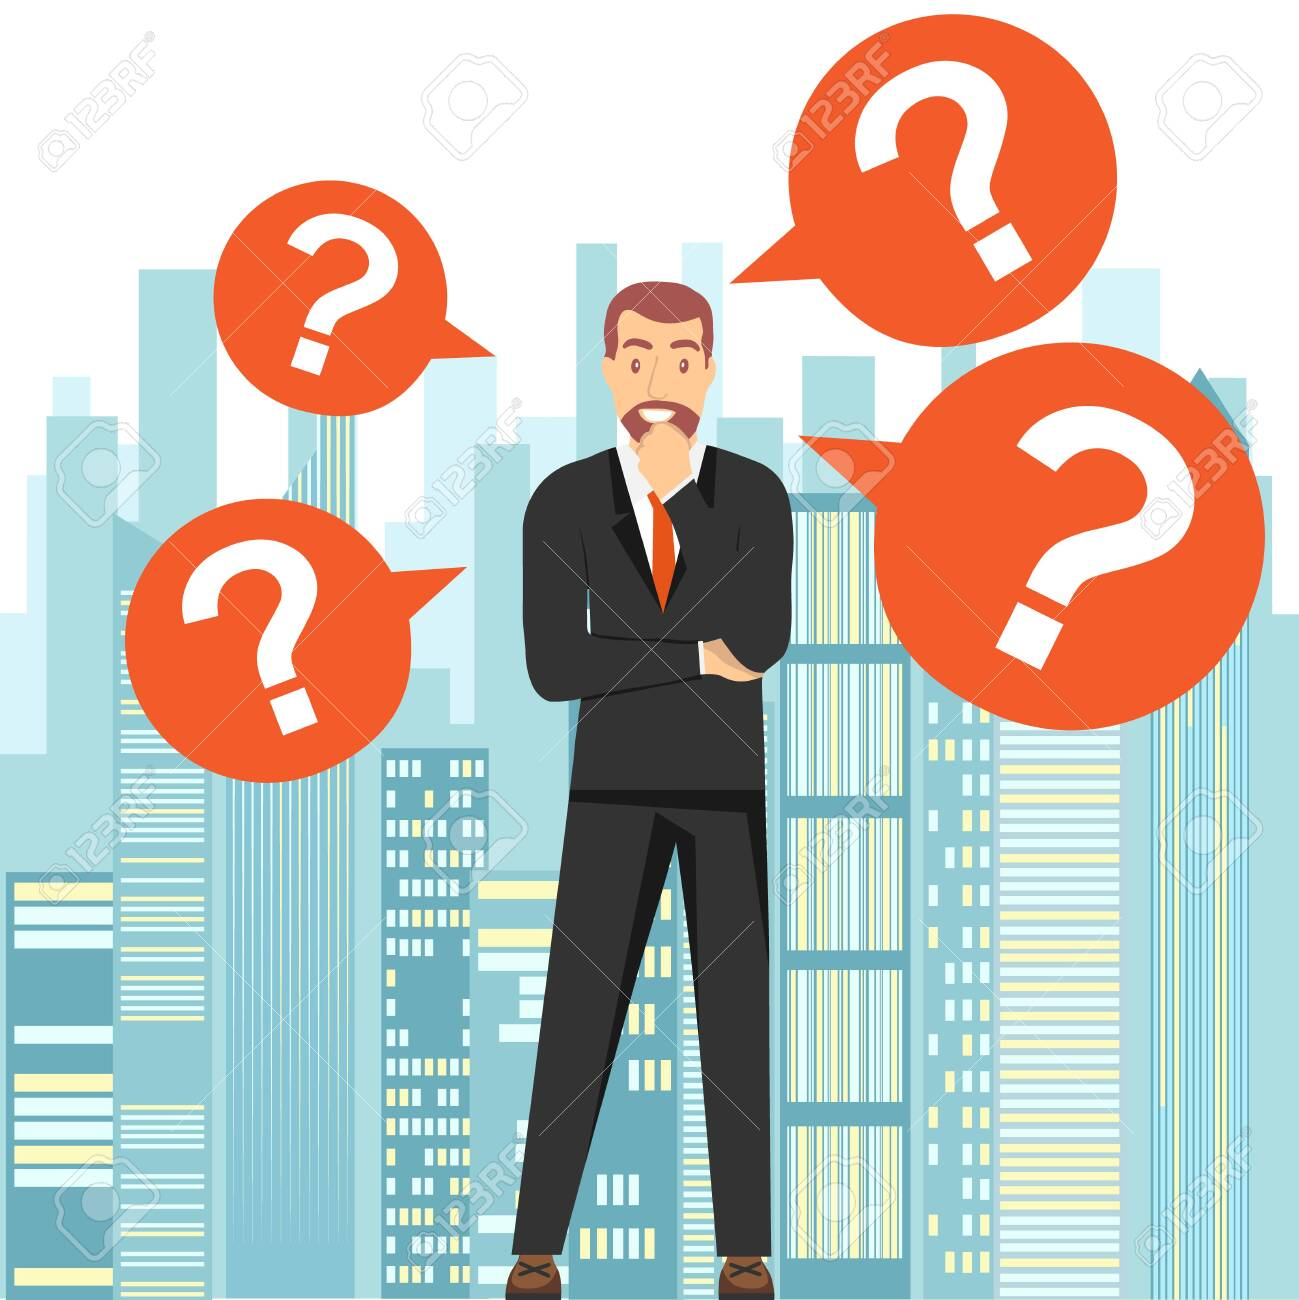 Thinking man. A man stands and thinks about a solution to the problem against the backdrop of the city landscape. Vector illustration. Vector. - 147875738